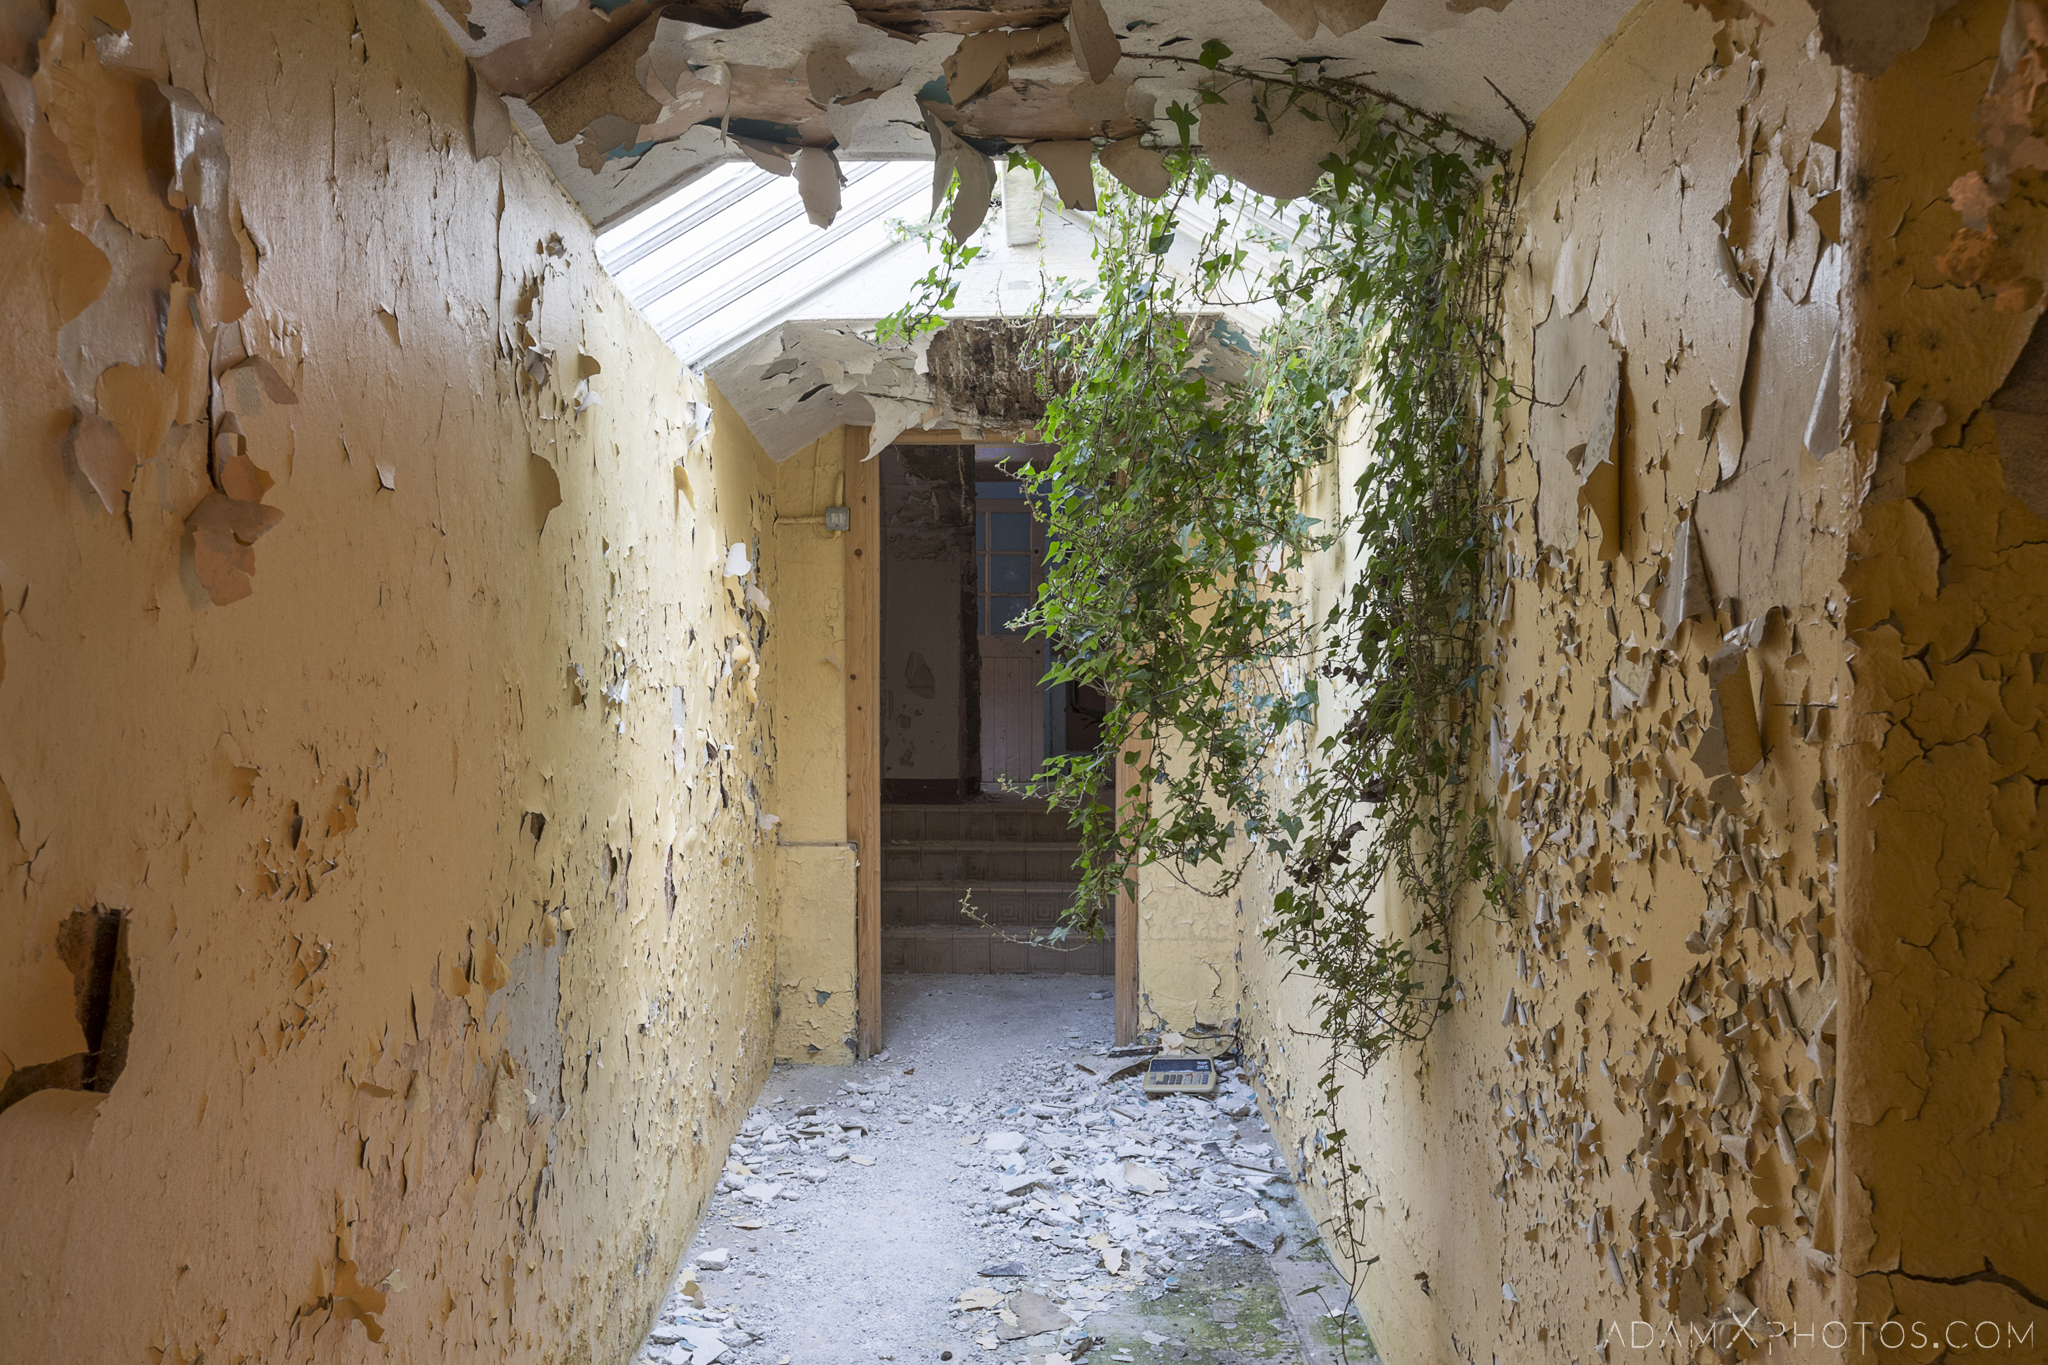 when nature takes over ivy overgrown corridor peeling paint Connacht District Lunatic Asylum St Brigid's Hospital Adam X Urbex Urban Exploration Ireland Ballinasloe Access 2017 Abandoned decay lost forgotten derelict location creepy haunting eerie